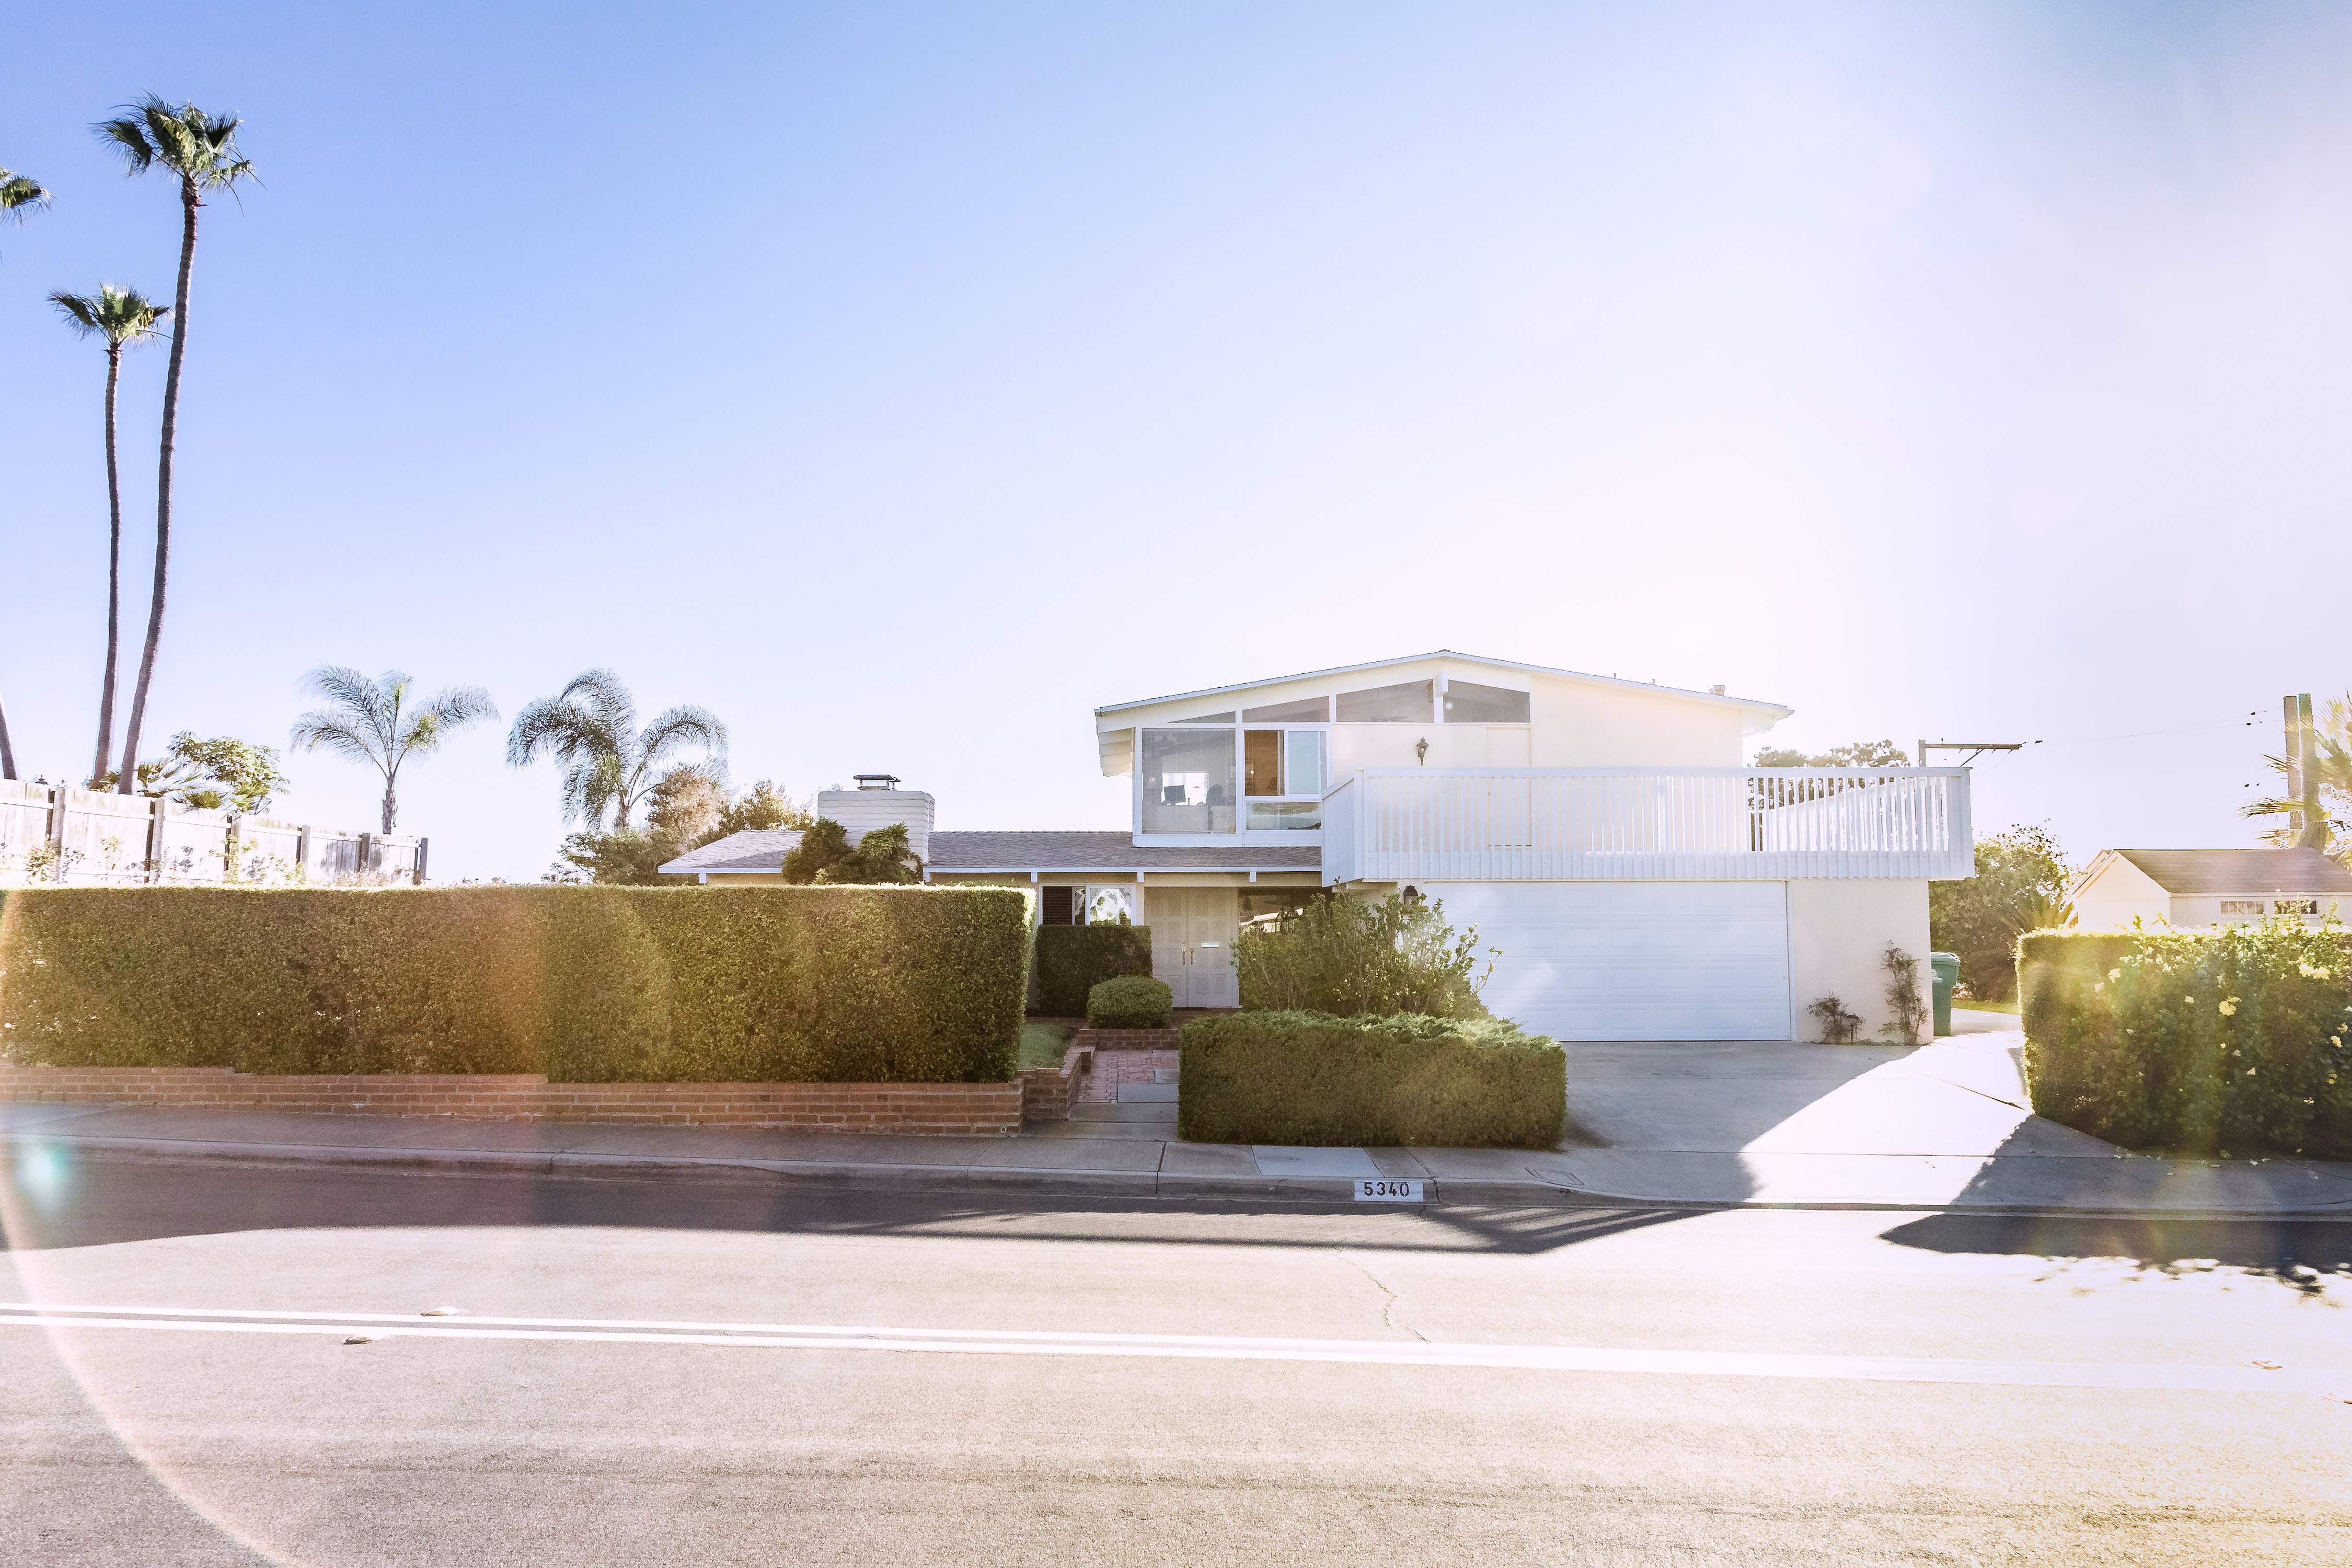 5340 Pacifica Dr